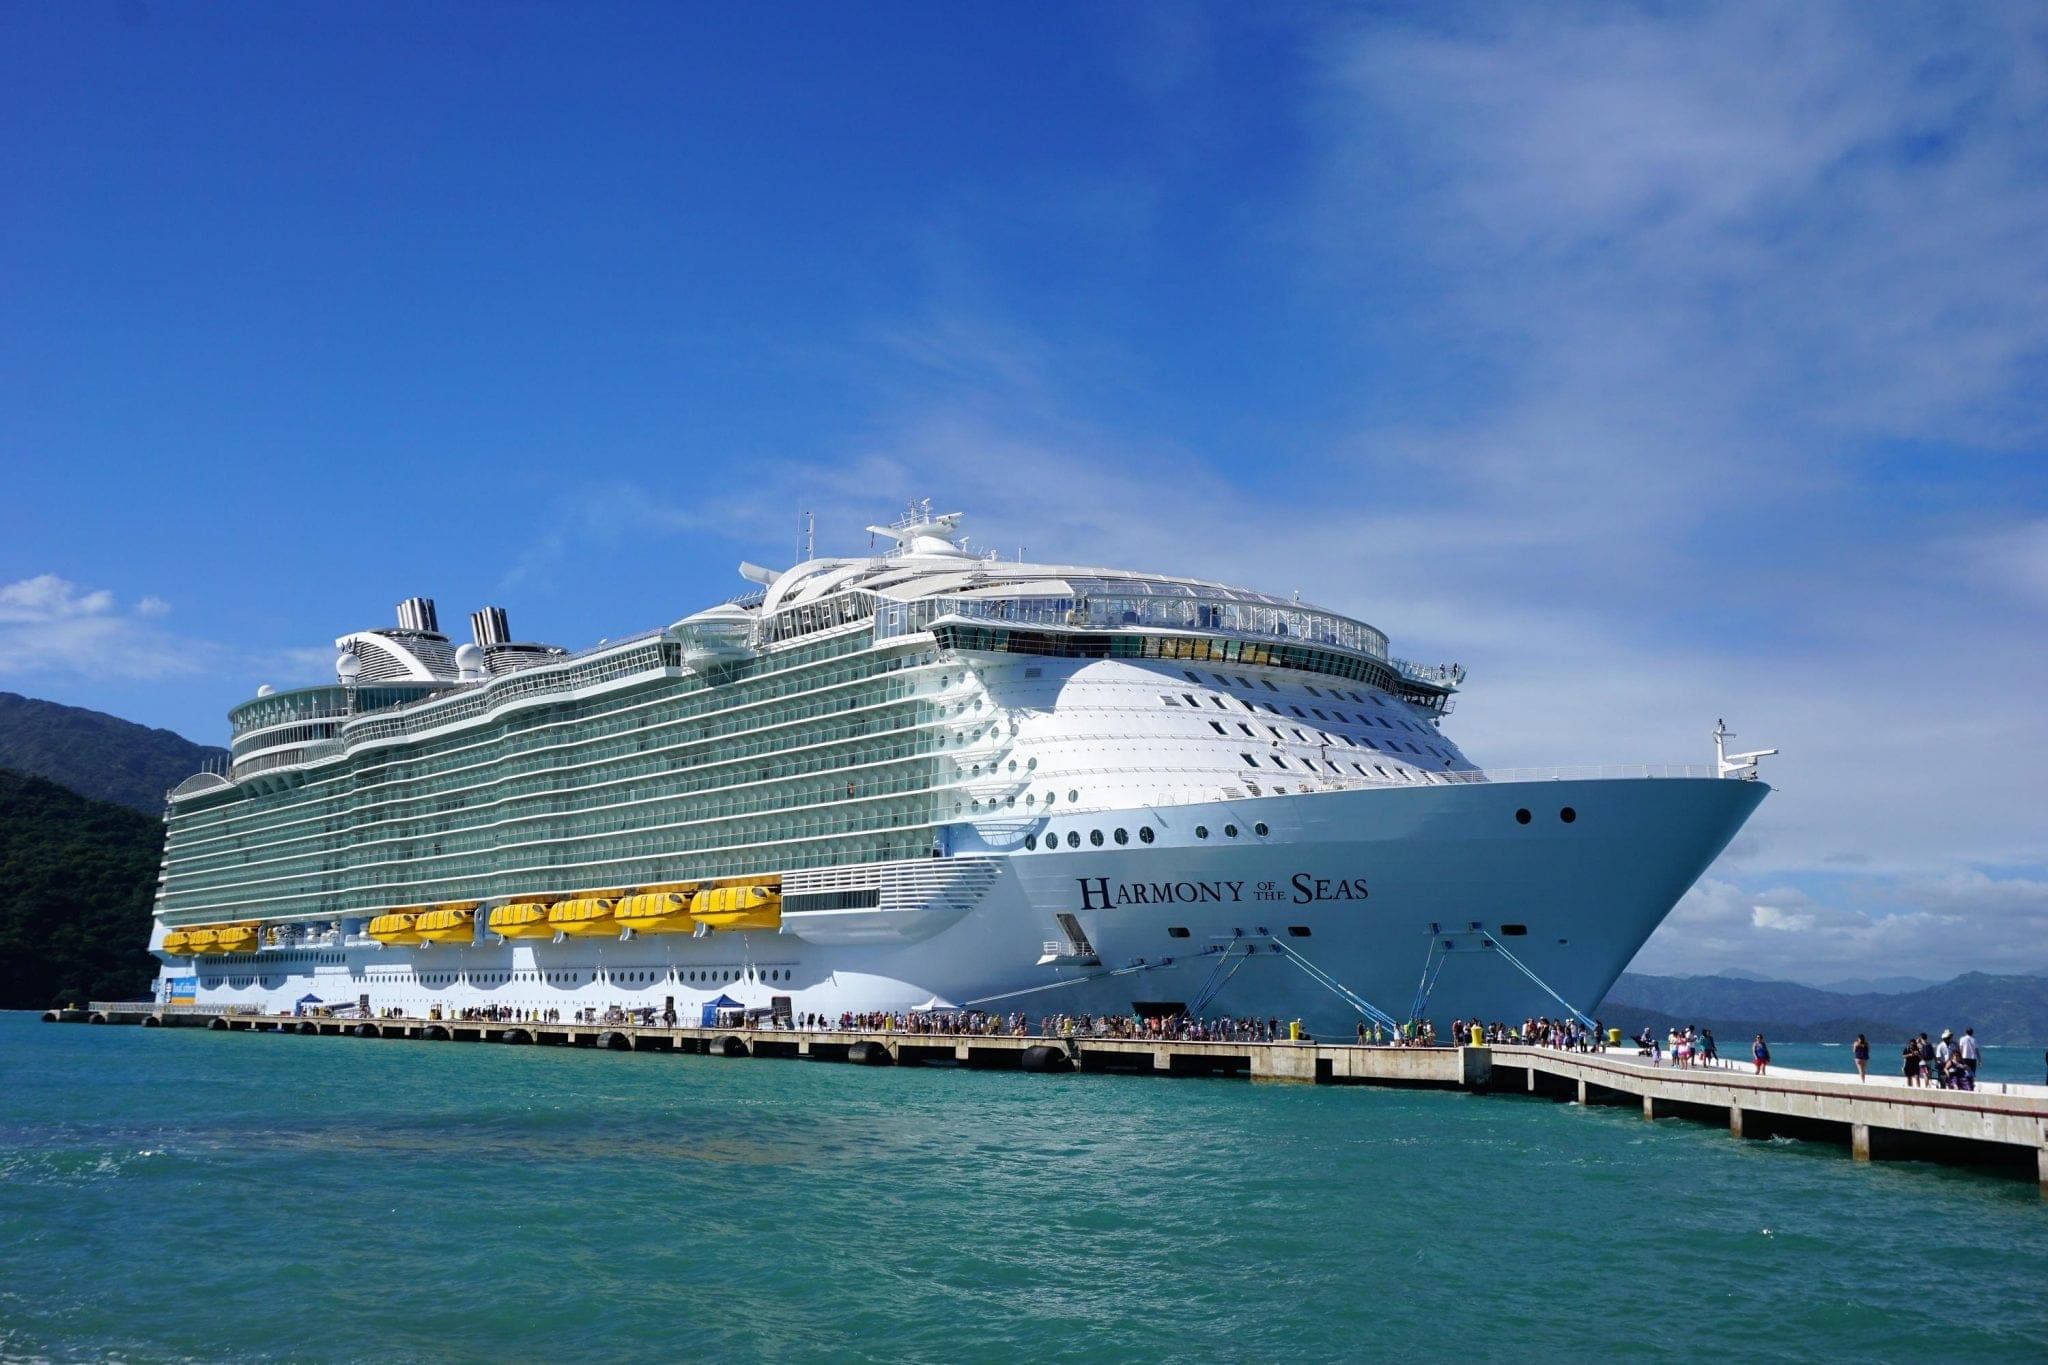 Harmony of the Seas Labadee Royal Caribbean Cruise Ship